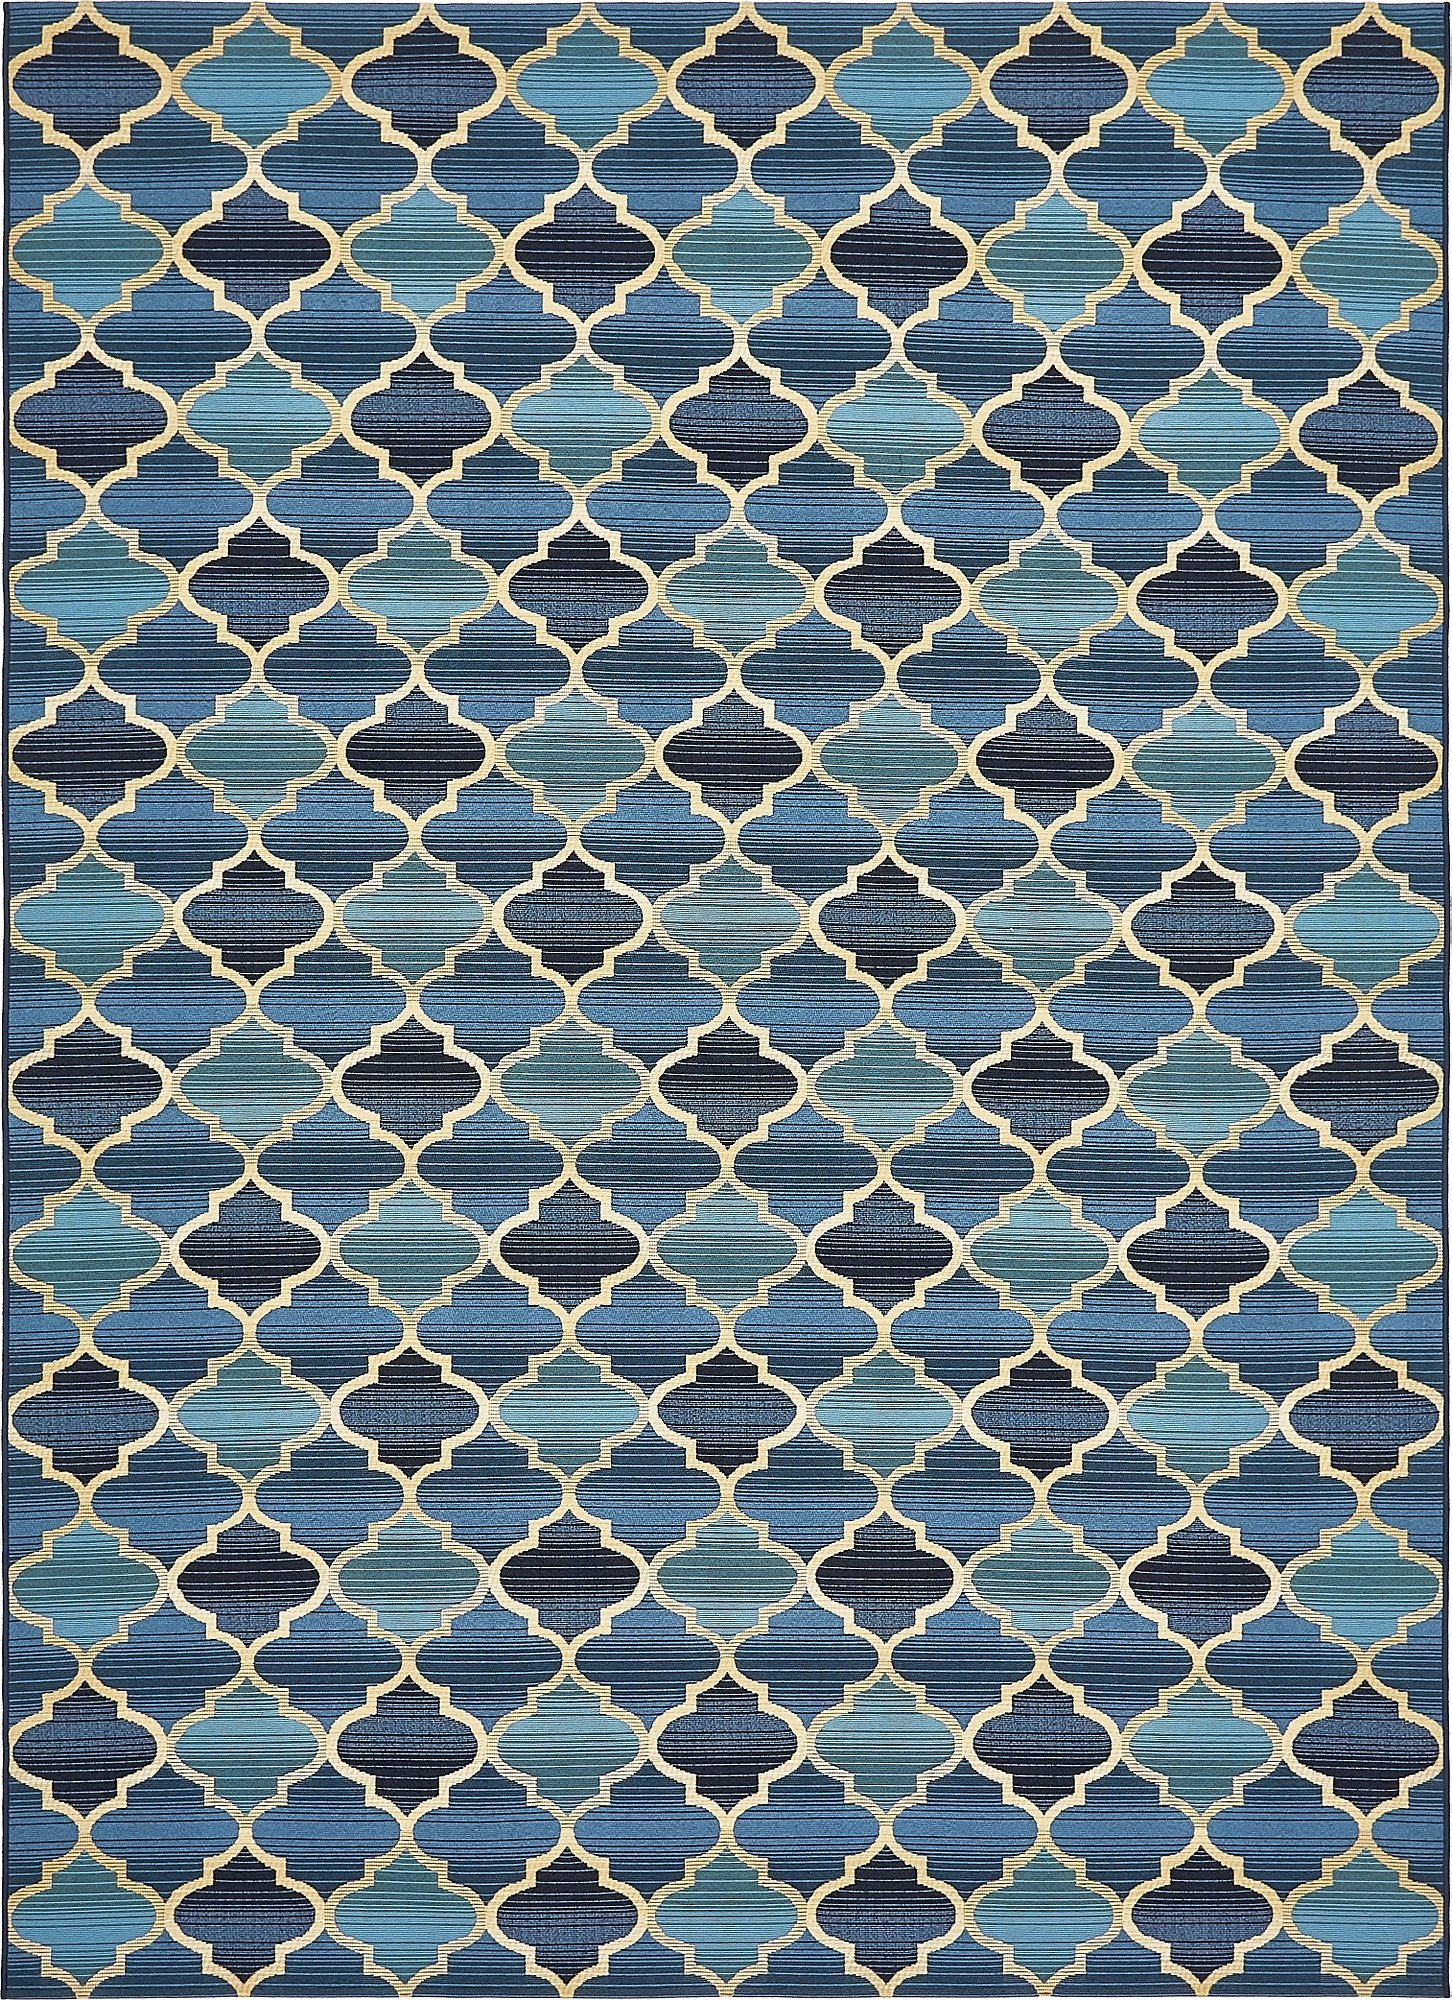 Unique Loom Eden Outdoor Collection Blue 8 x 11 Area Rug (8' x 11' 4'') by Unique Loom